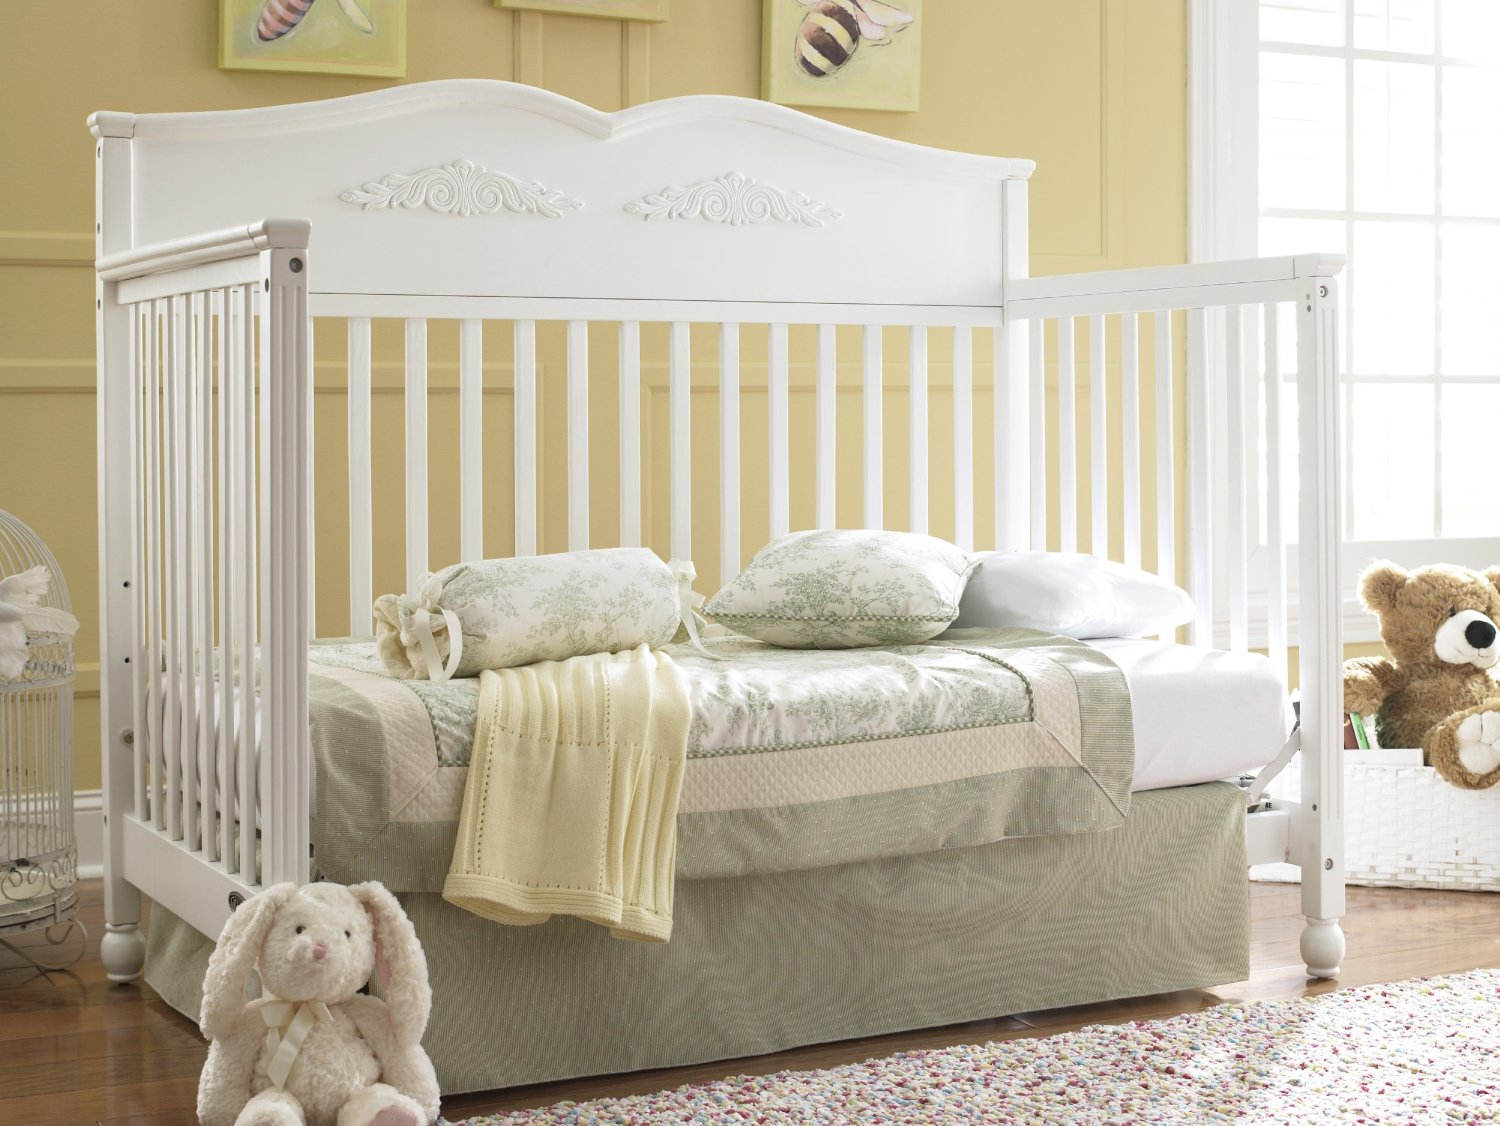 nursery furniture sets baby room theme